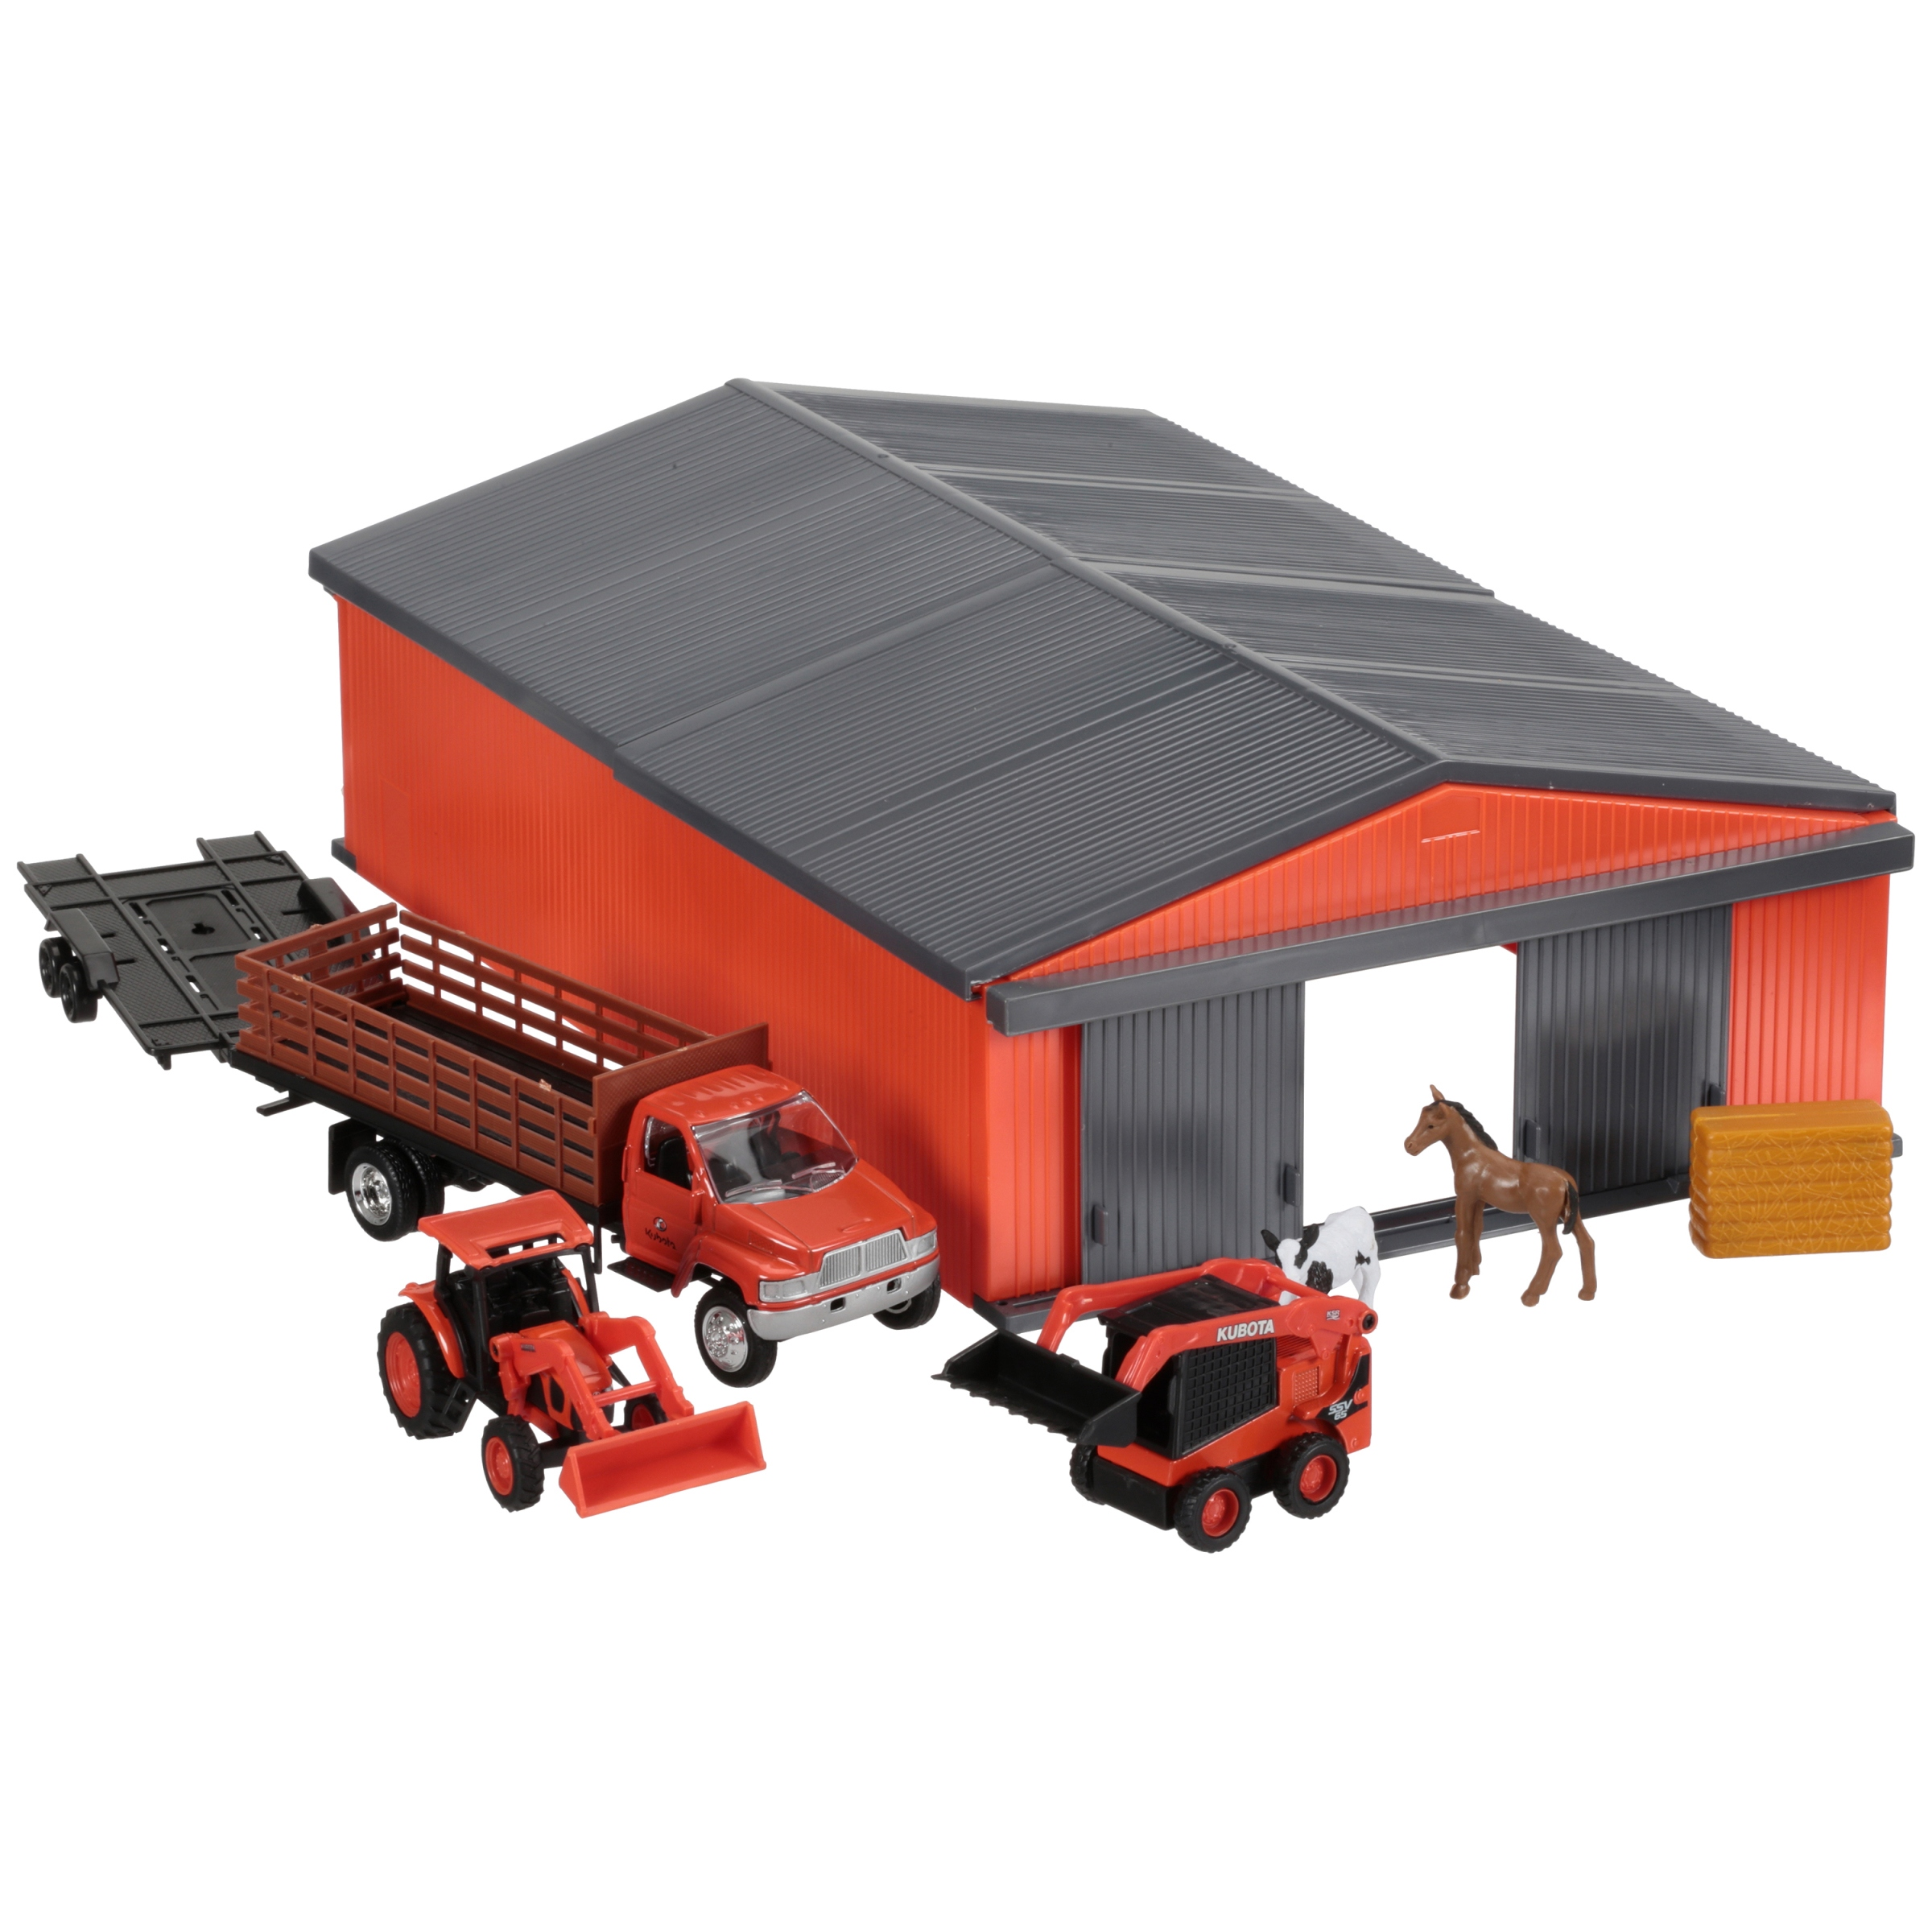 Kubota Farm Equipment Vehicles & Shed Toy Set 18 pc Box by Kubota Tractor Corporation